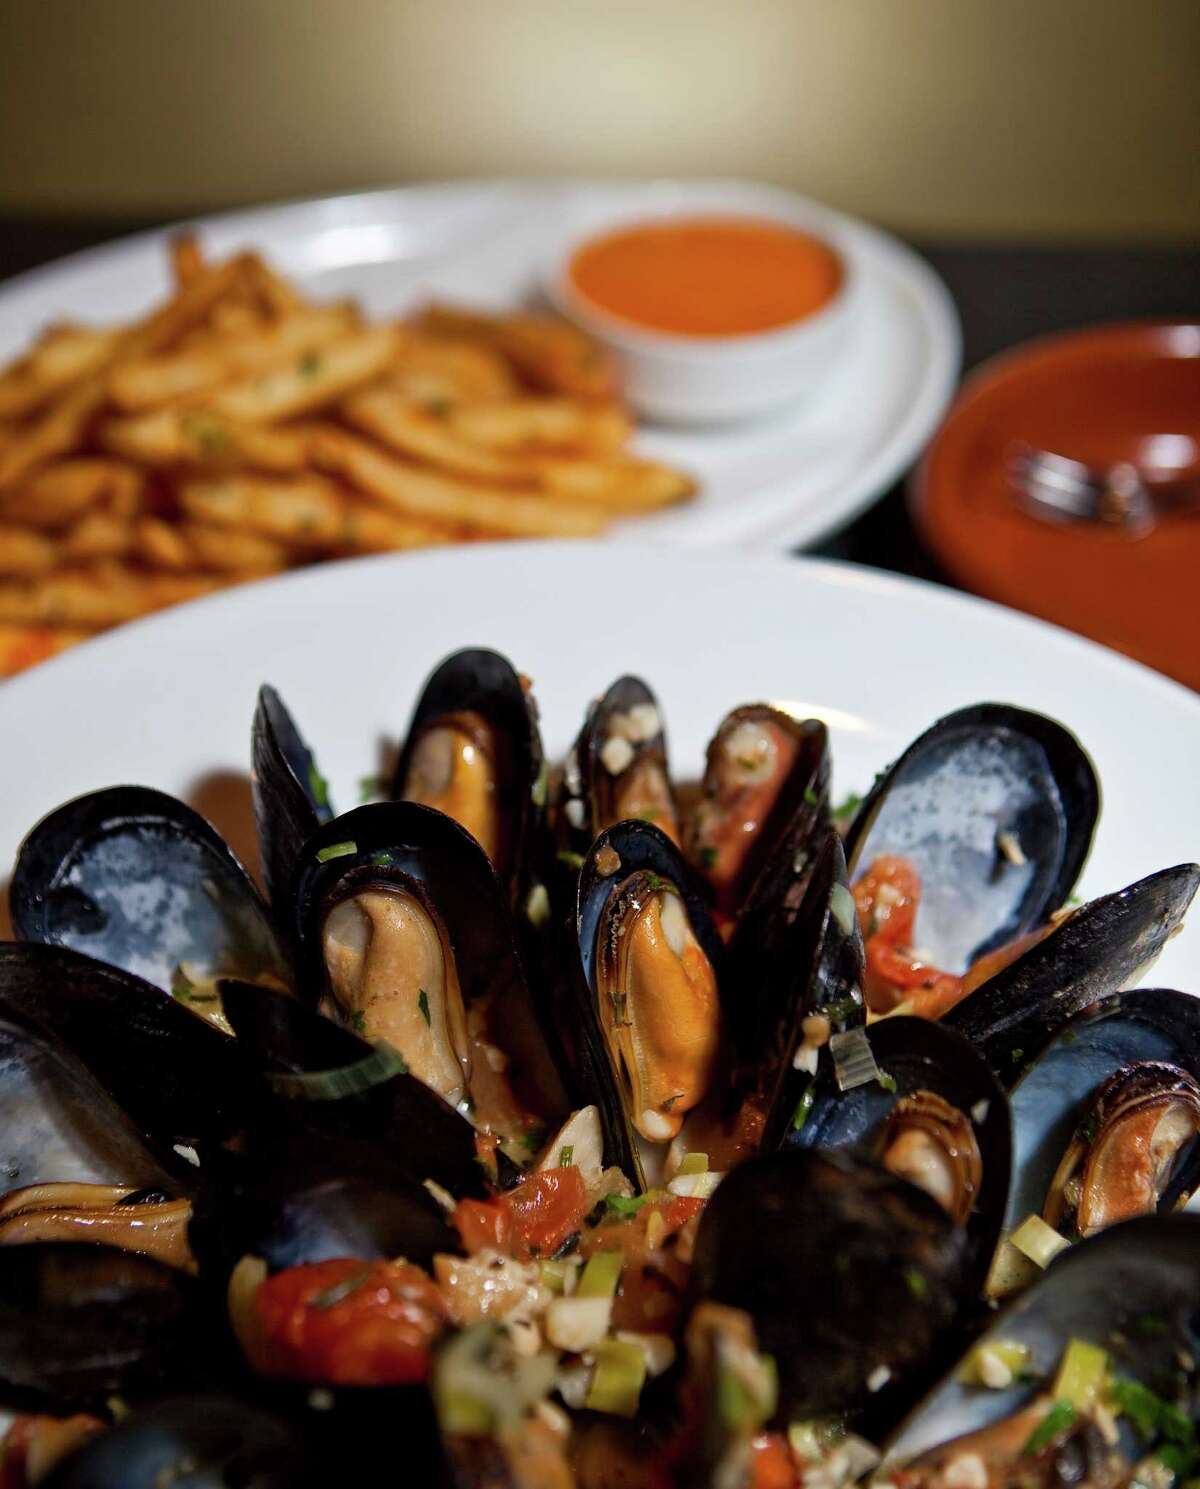 Costa Brava Bistro's steamed mussels and french fries